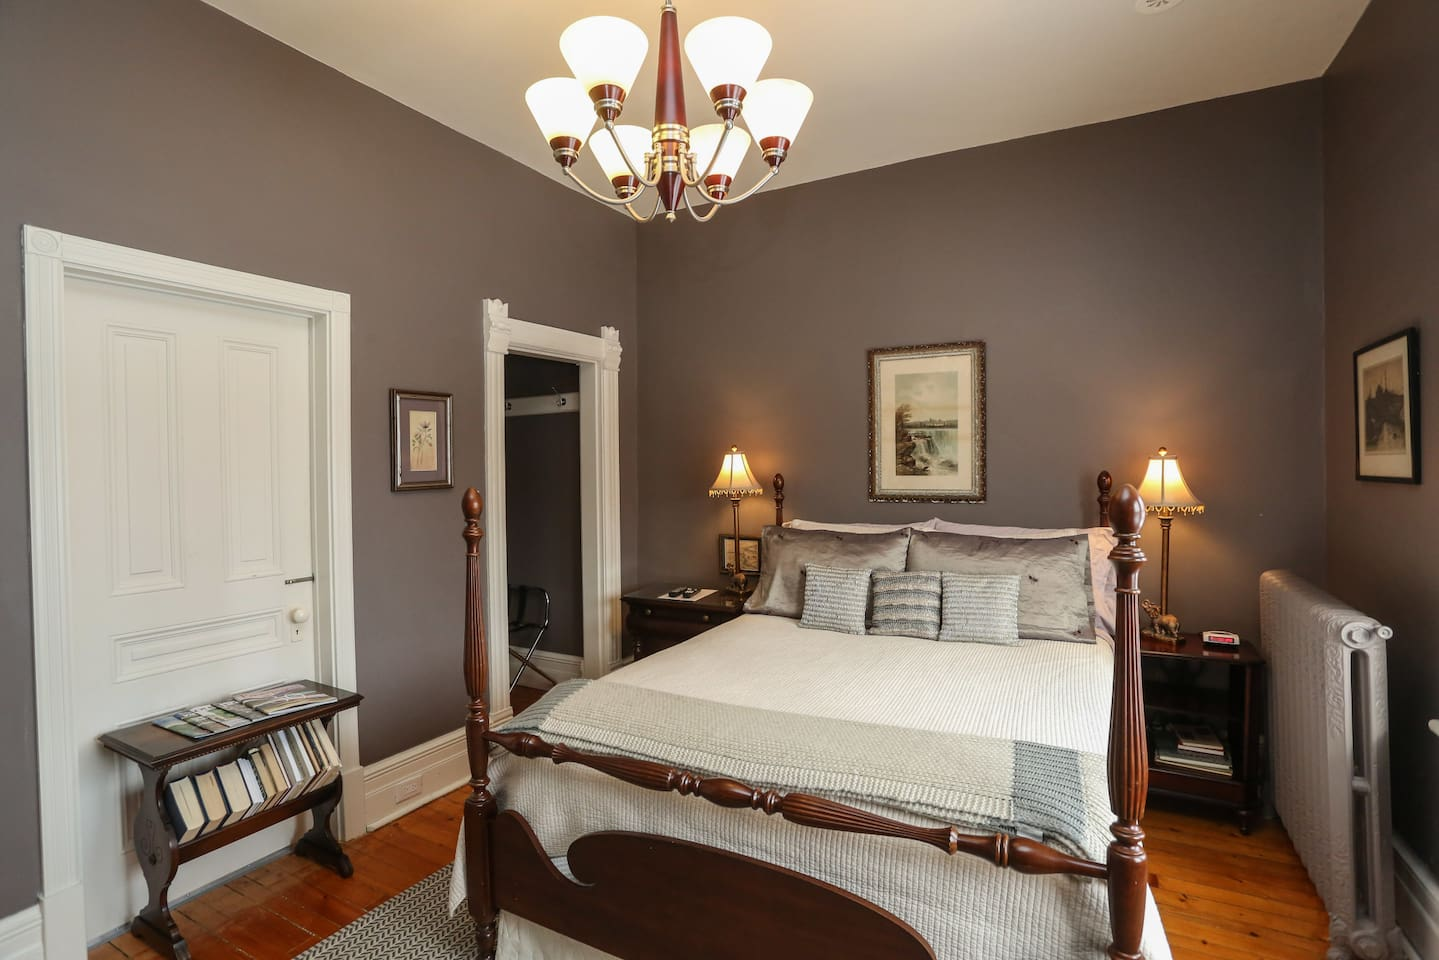 Jane's 1 Room. Queen bed with memory foam mattress and luxury linens. Bathroom shared with Jane's 2 Room.